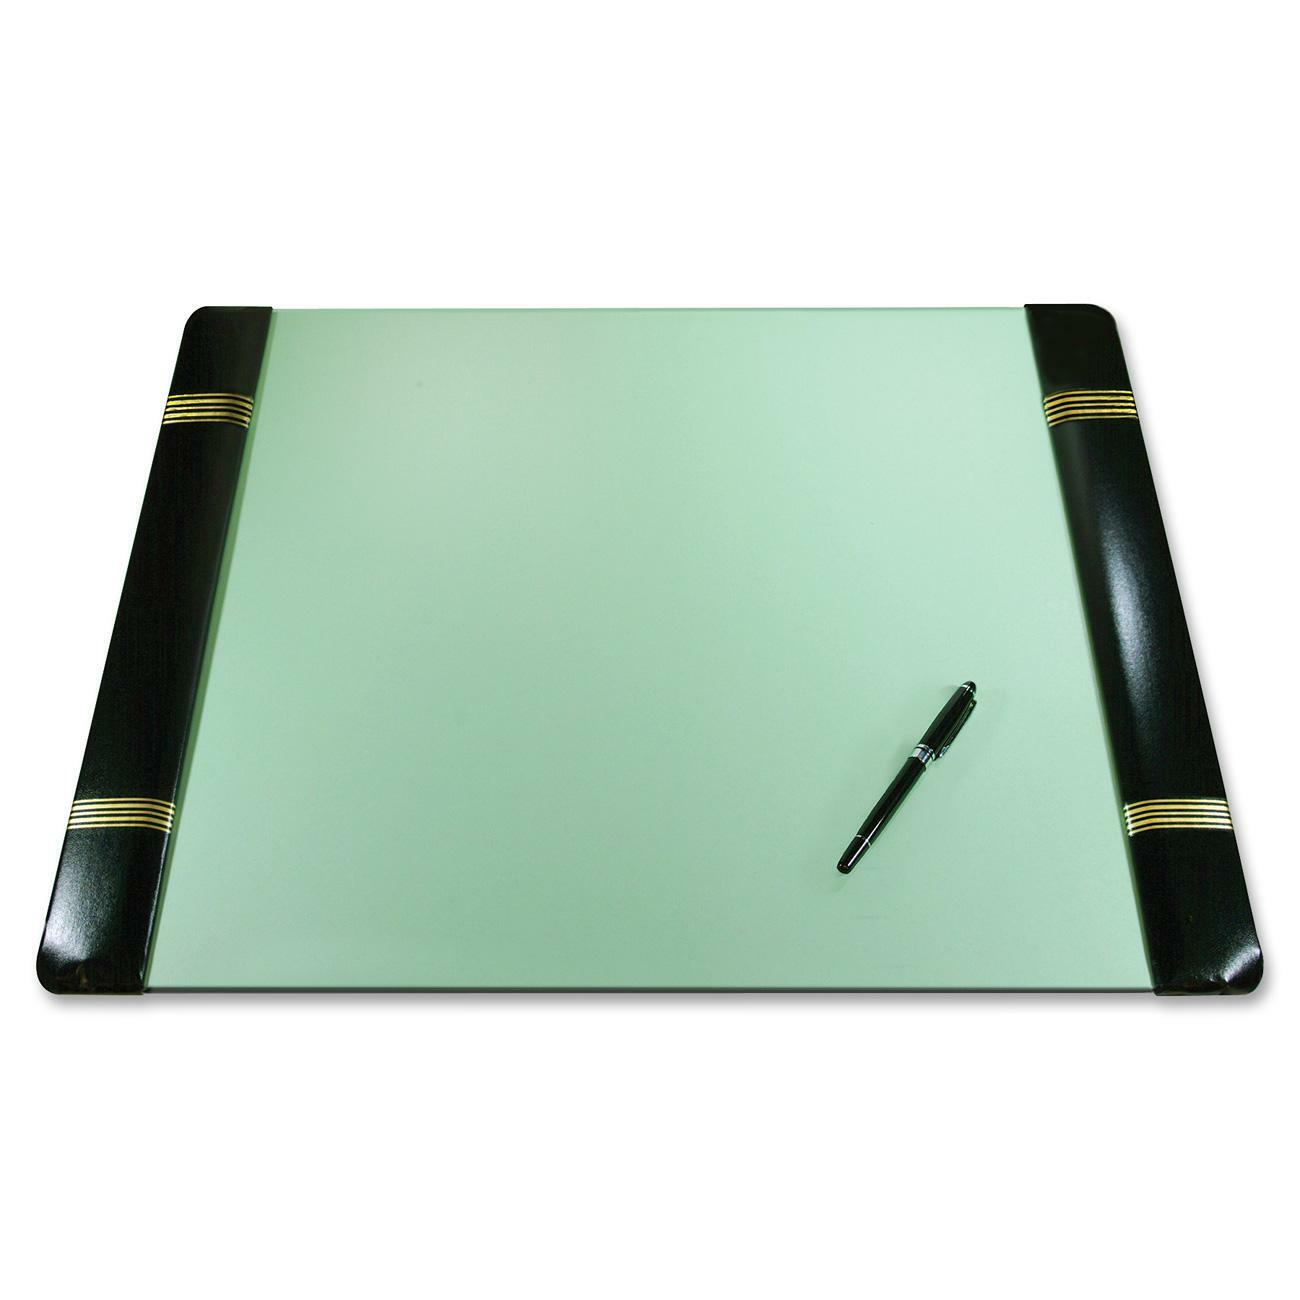 Traditional Style Classic Padded Gold Tooled Side Panel Blotter Desk Pad Complements Any Home Or Office Refillable Paper Protects Both And